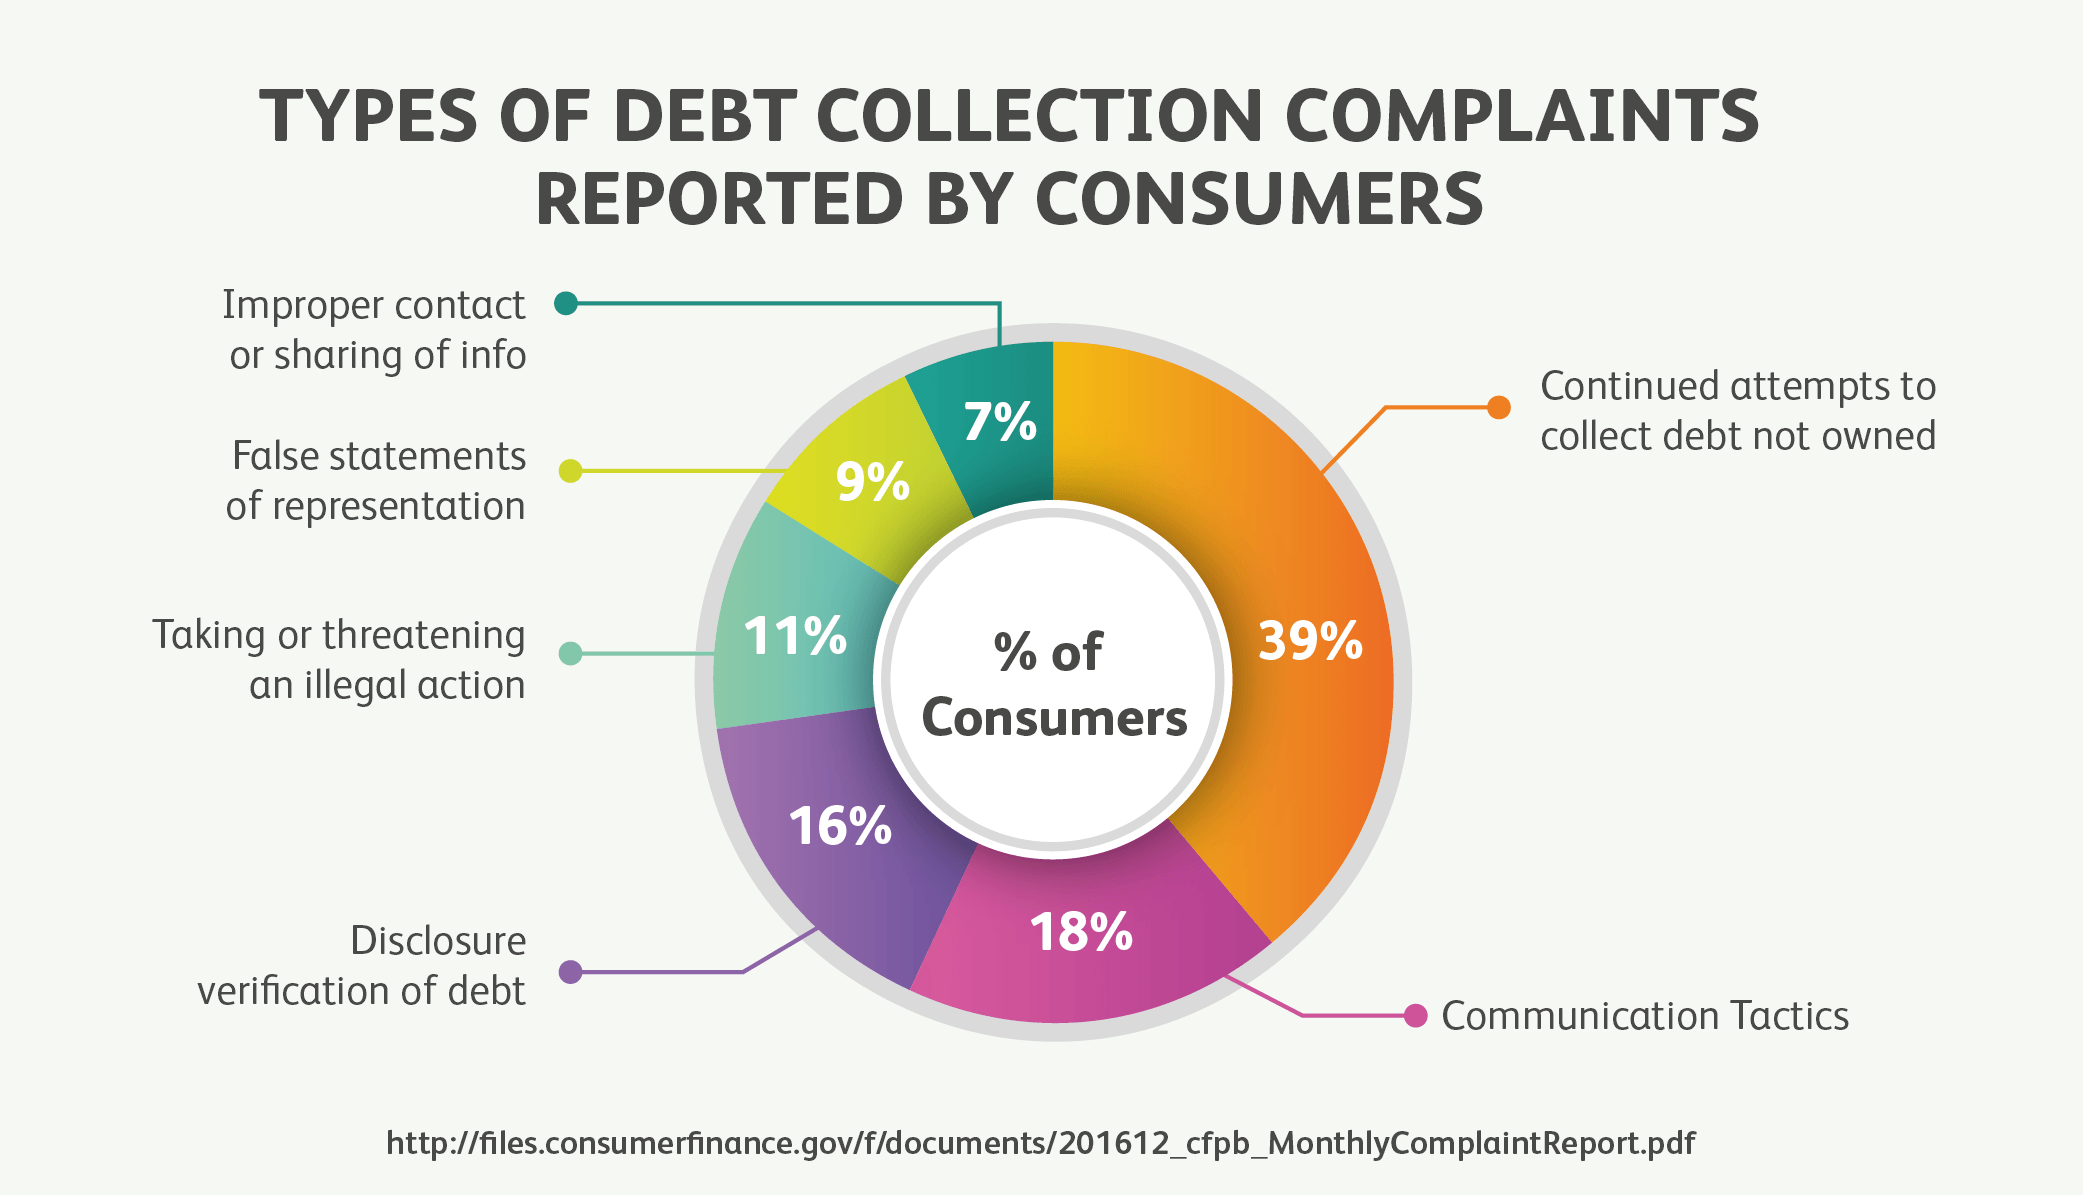 Types Of Debt Collection Complaints Reported By Consumers